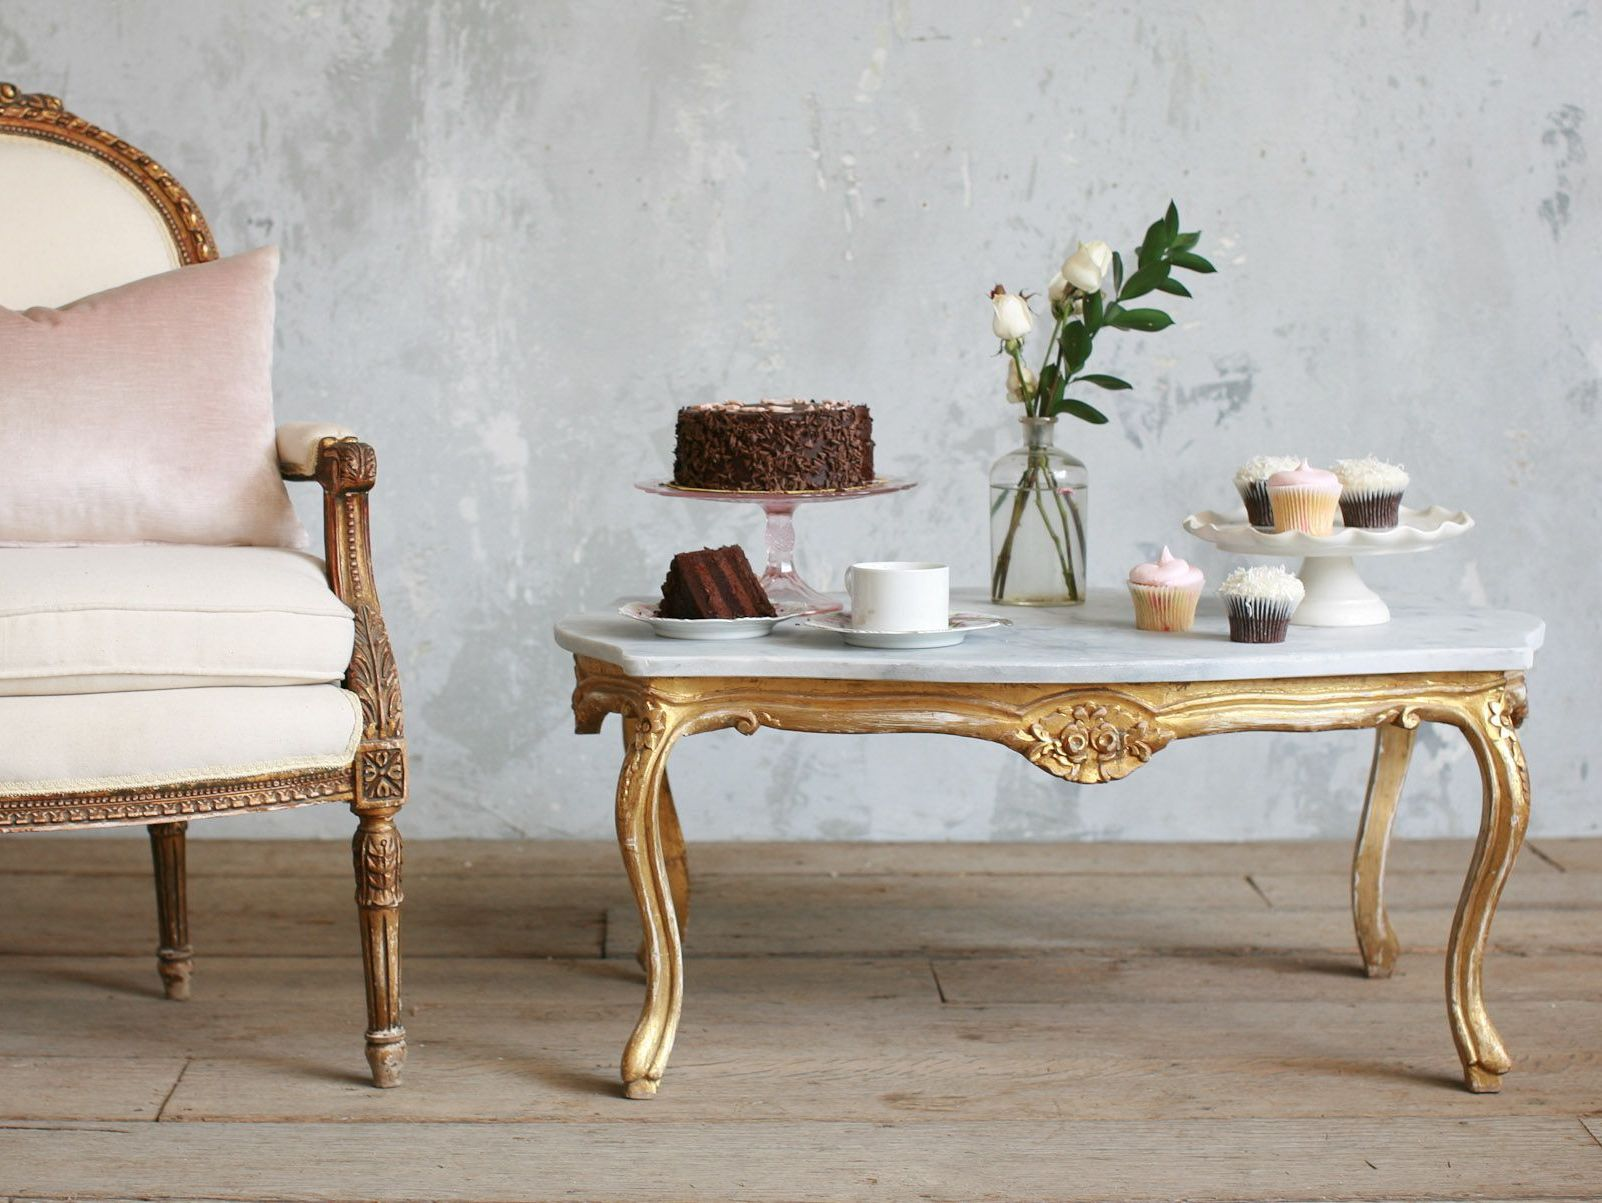 Vintage coffee tables arranged with cupcakes